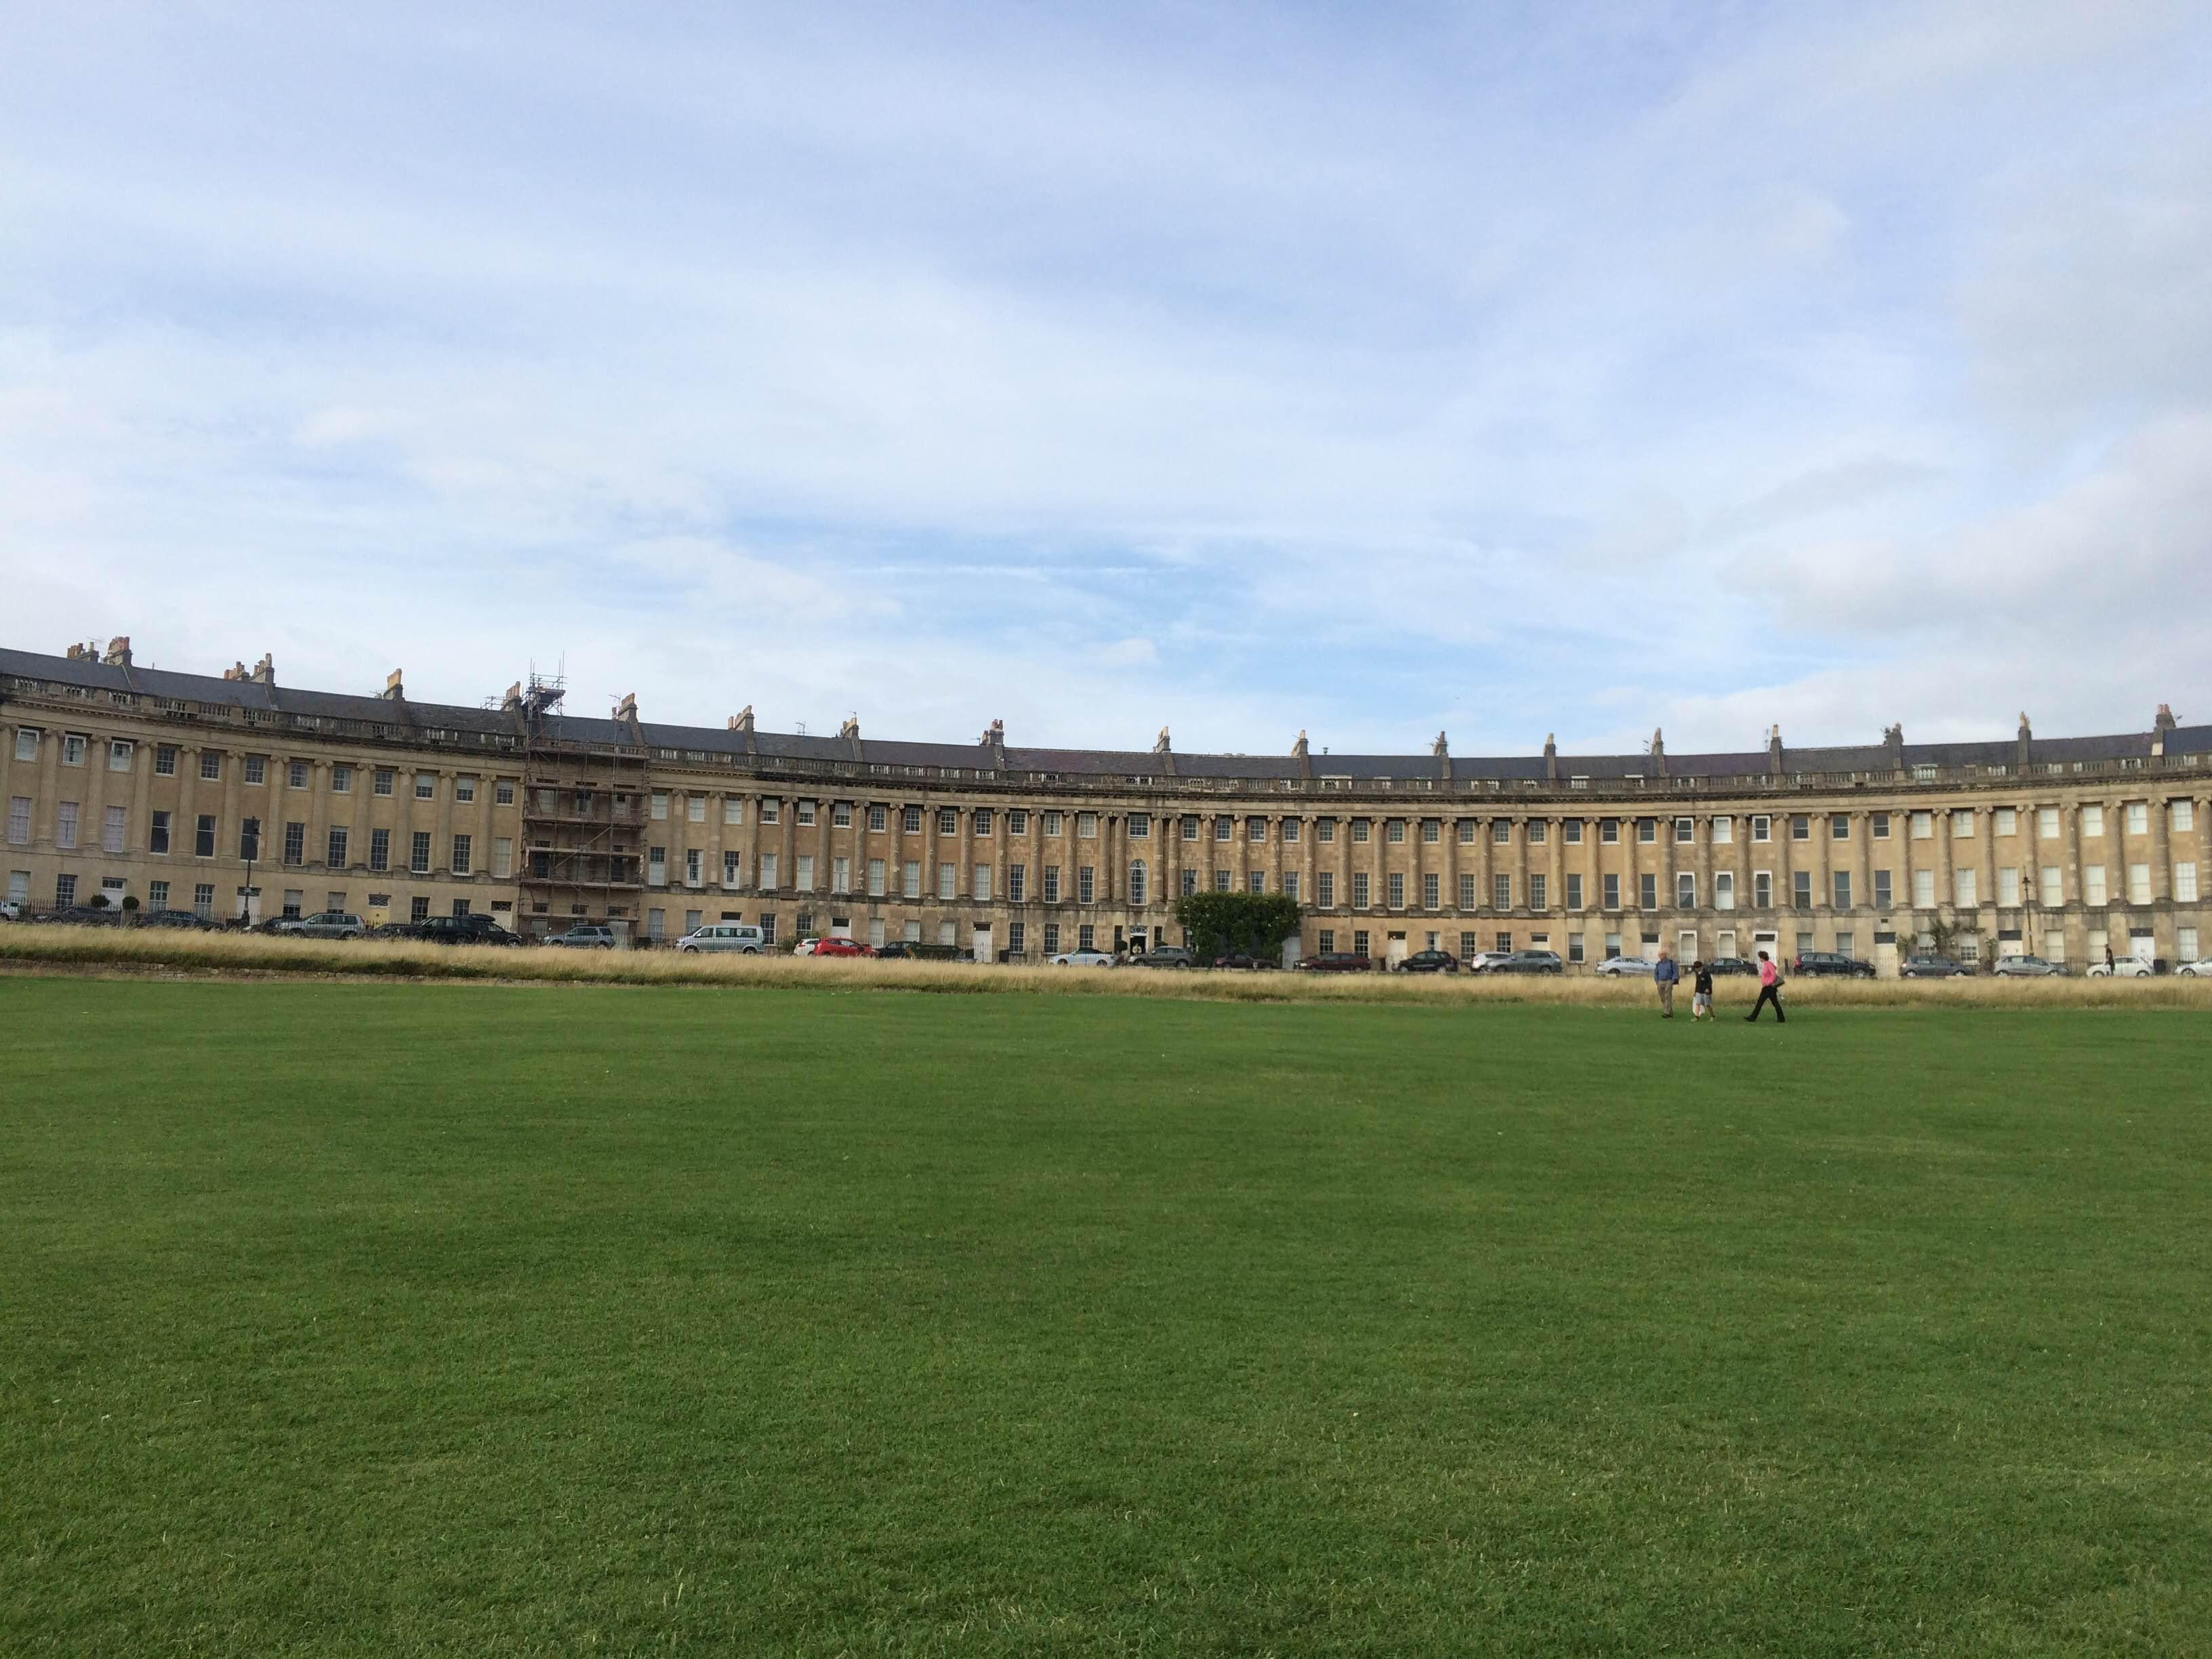 Hotel The Royal Crescent